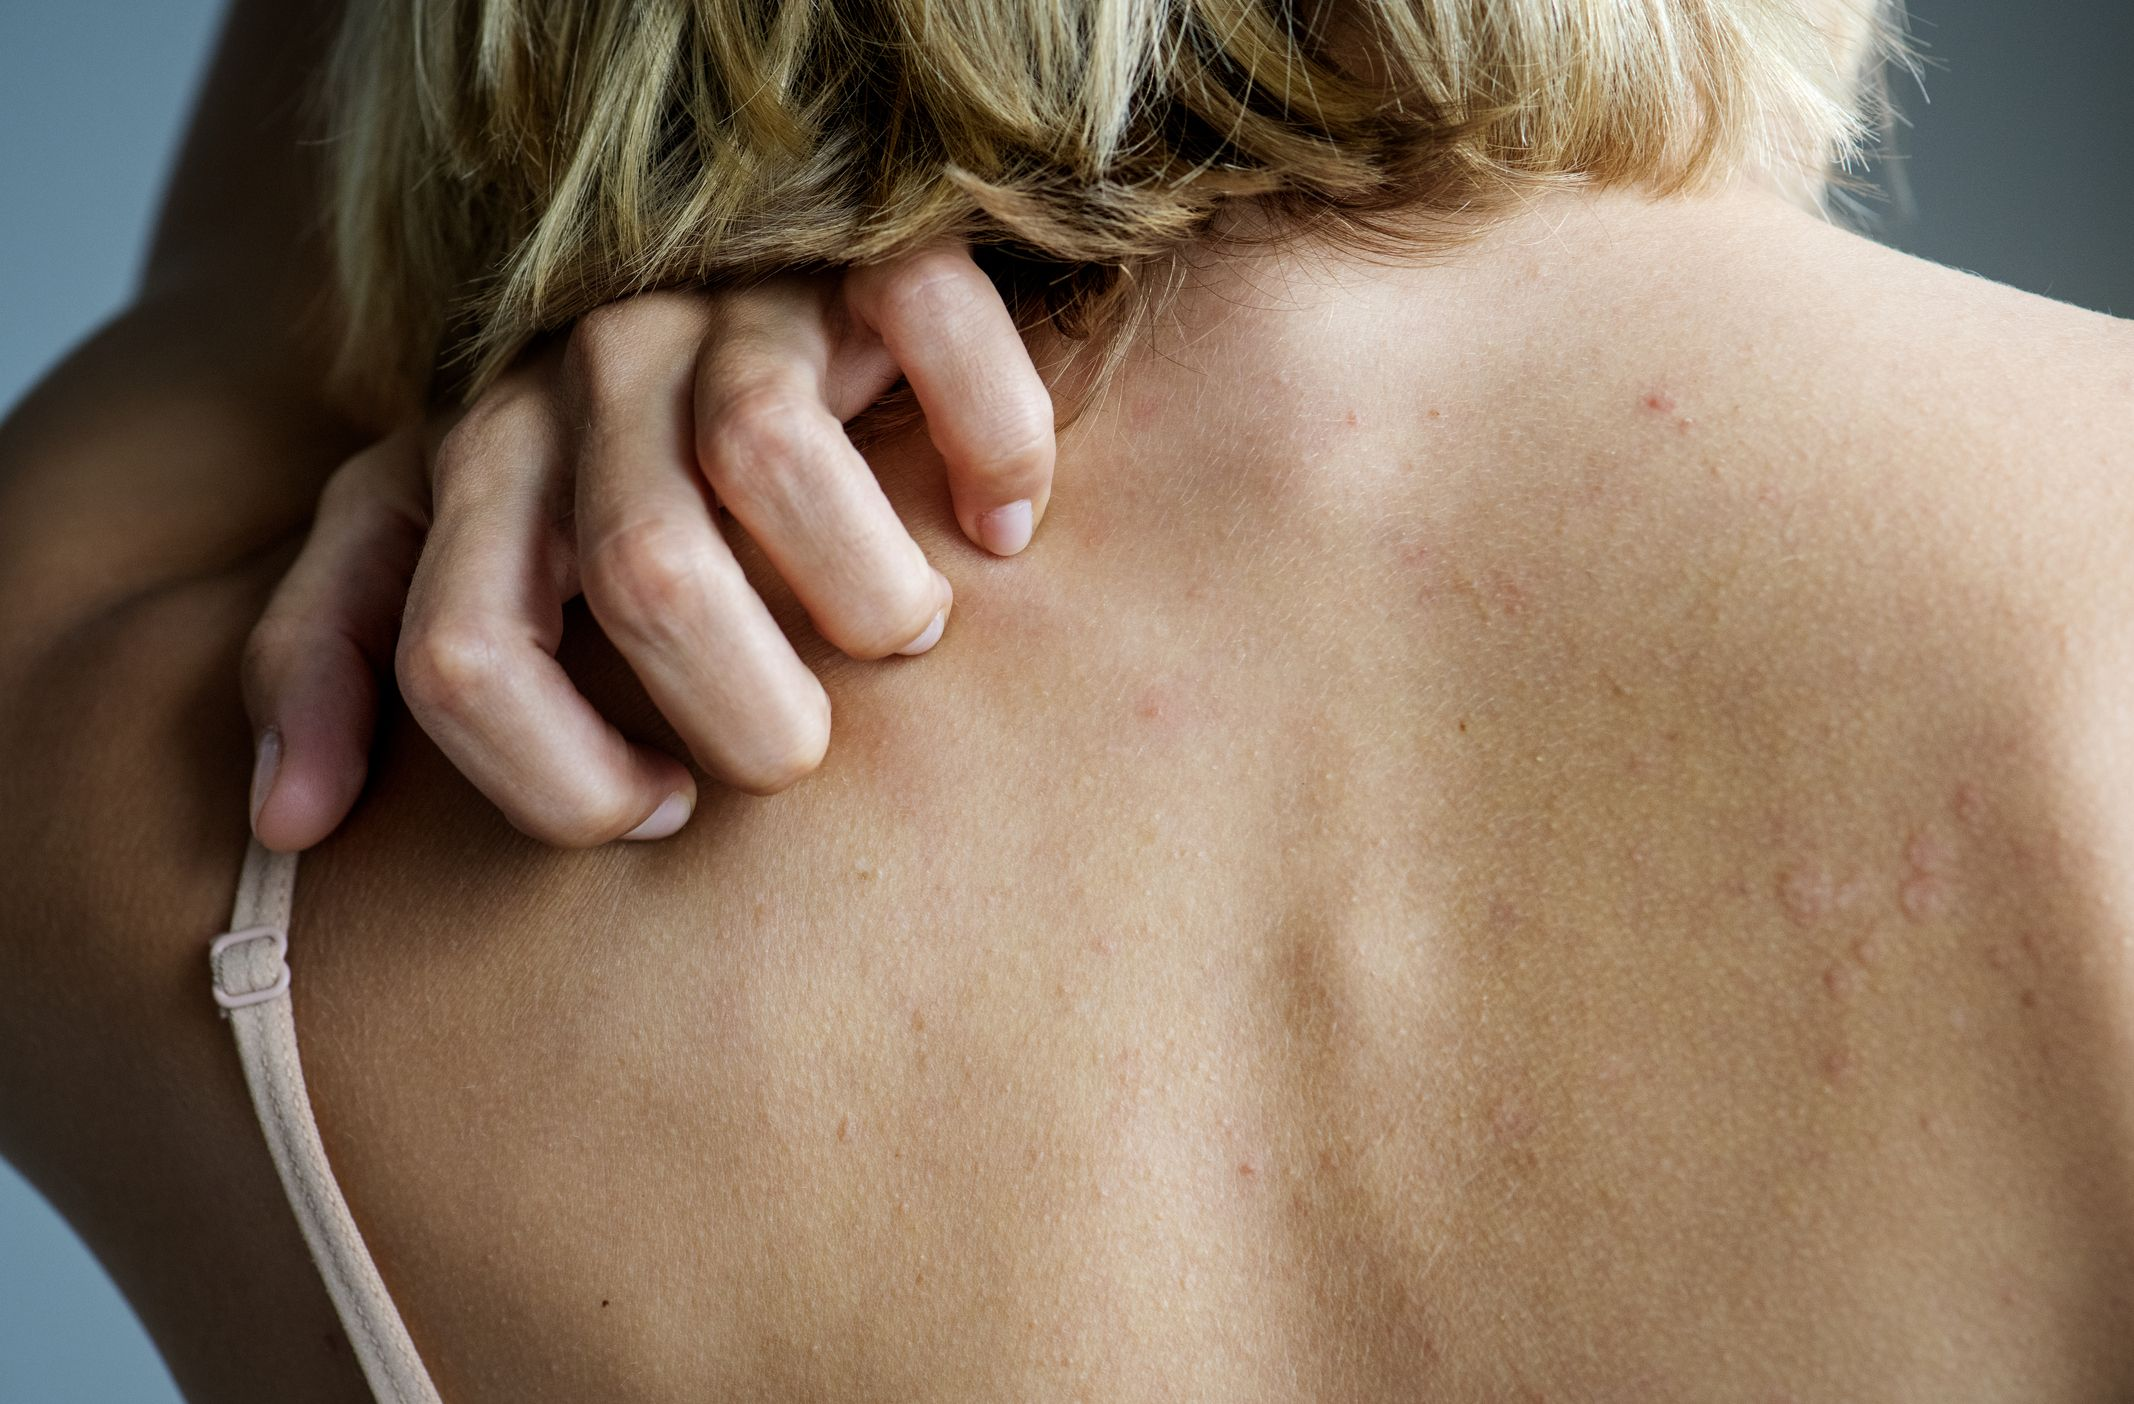 can steroids cause itchy skin